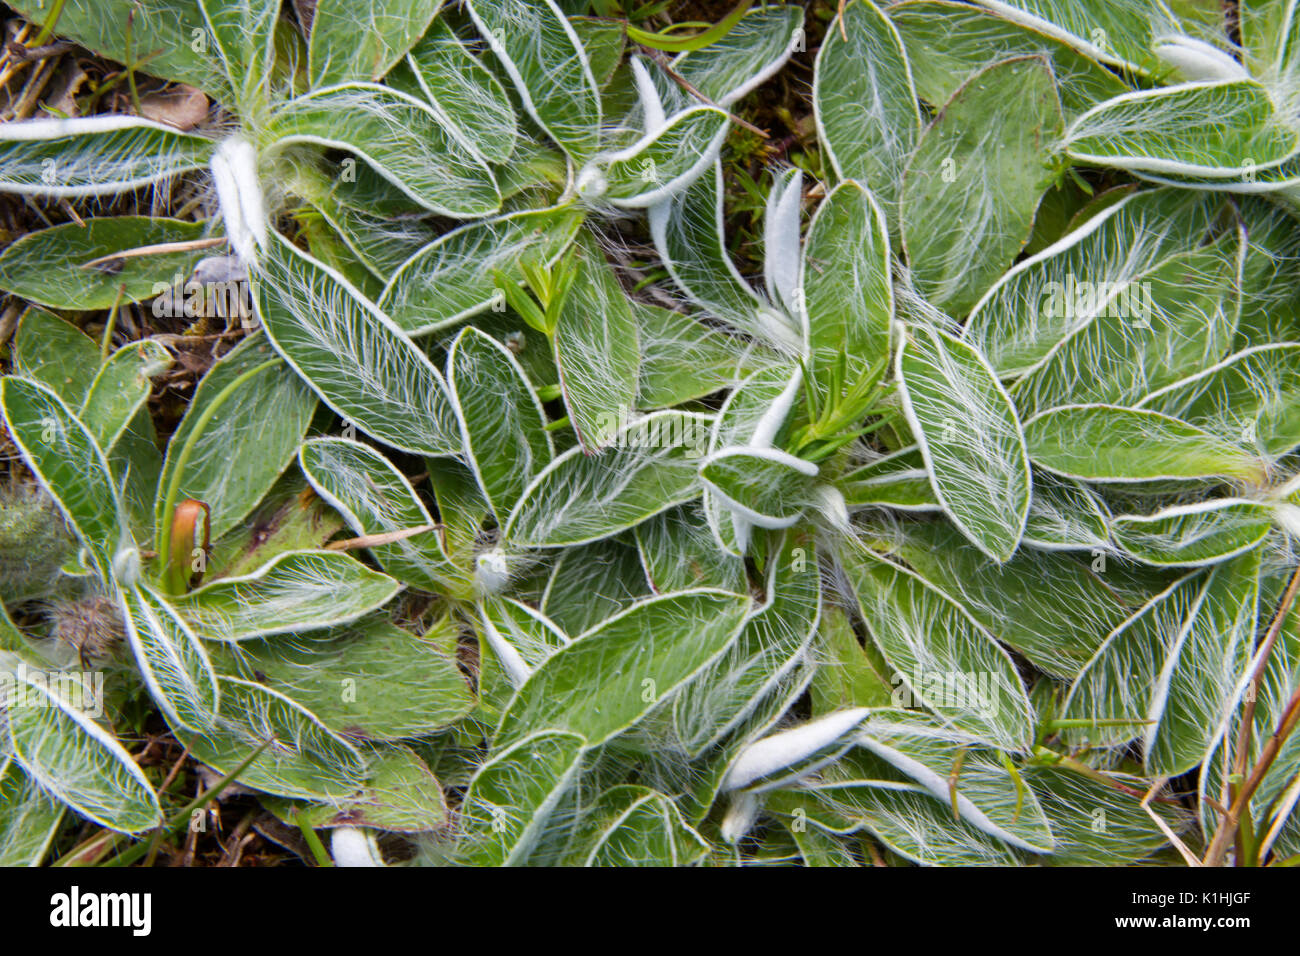 The hairy leaves of Mouse-ear hawkweed - Stock Image